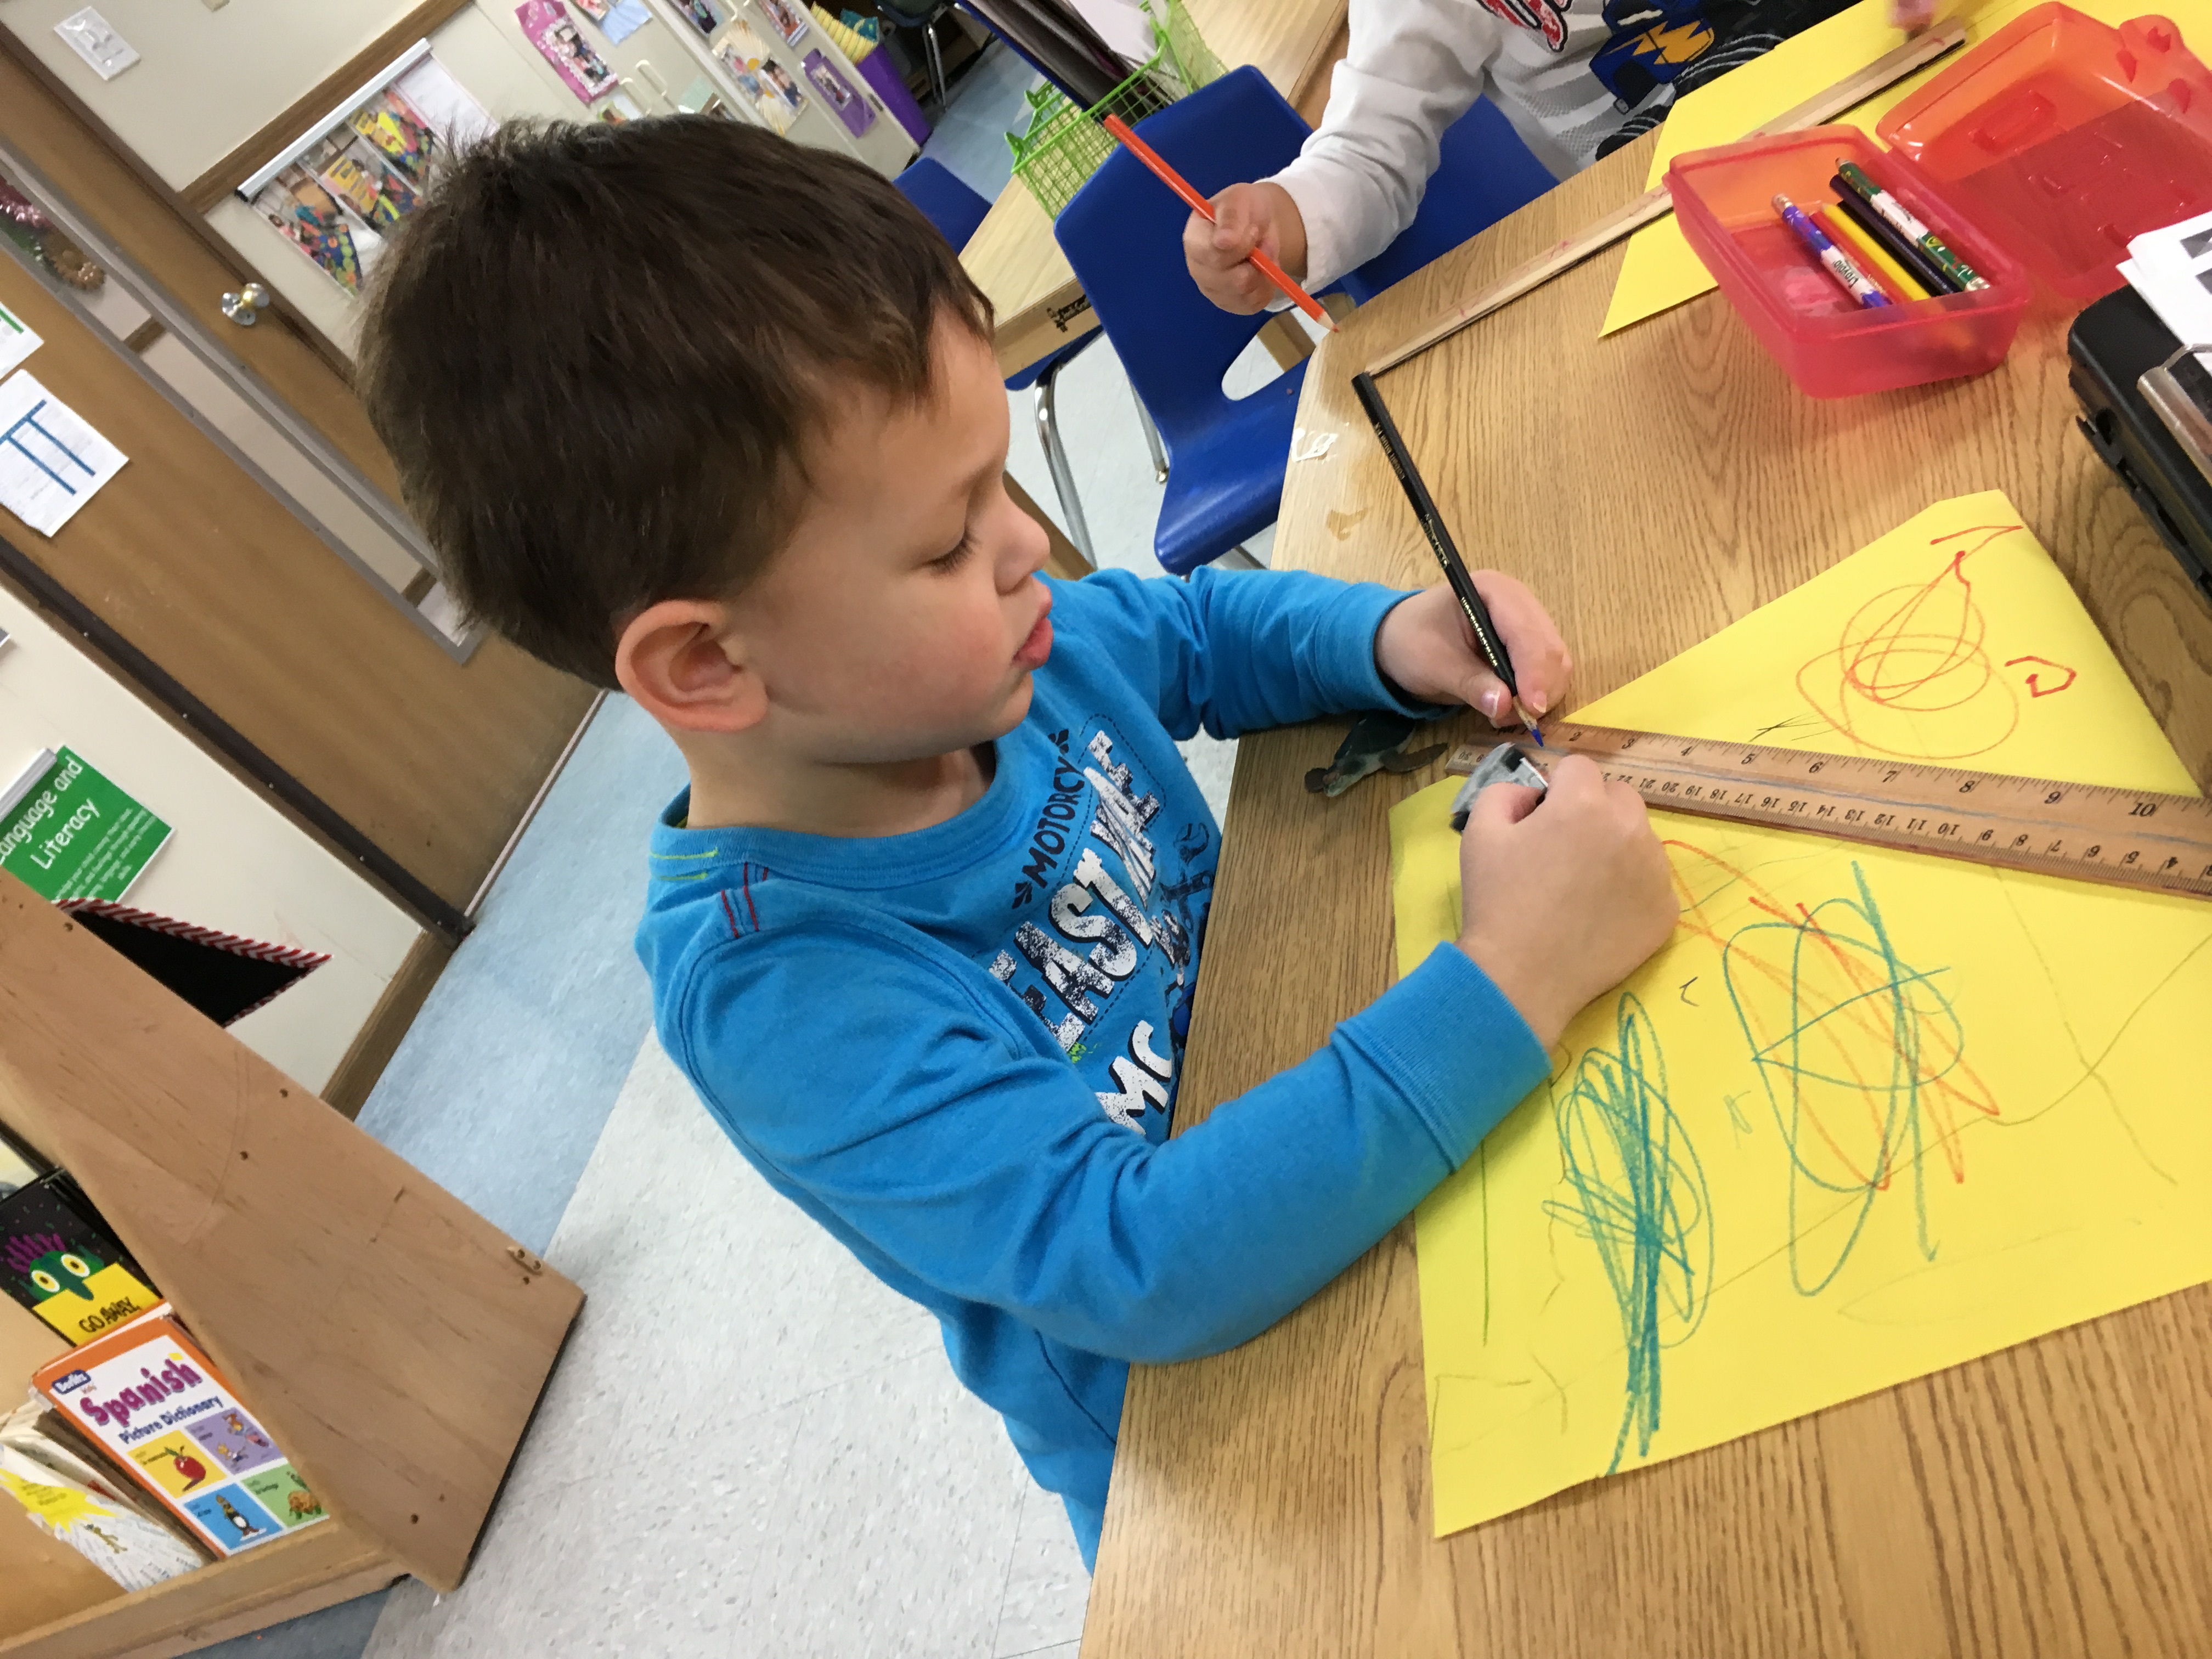 Practicing writing and measuring skills in the Preschool Classroom.